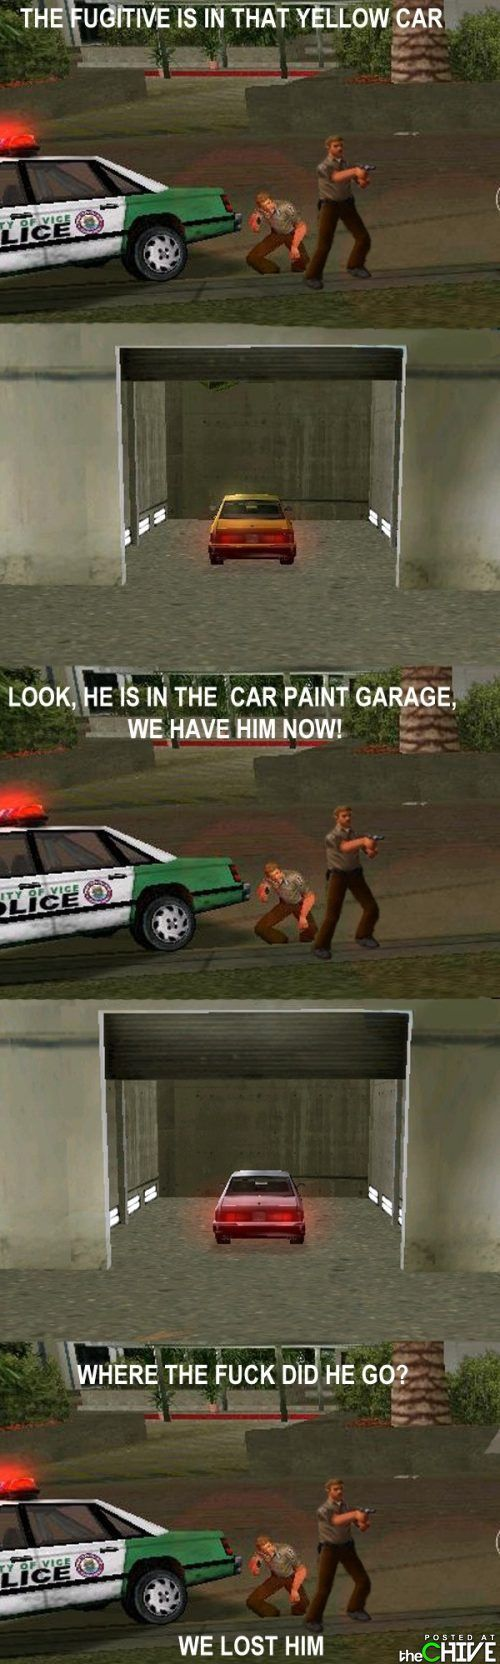 Why we love Grand Theft Auto. Aaw the Vice City good times!